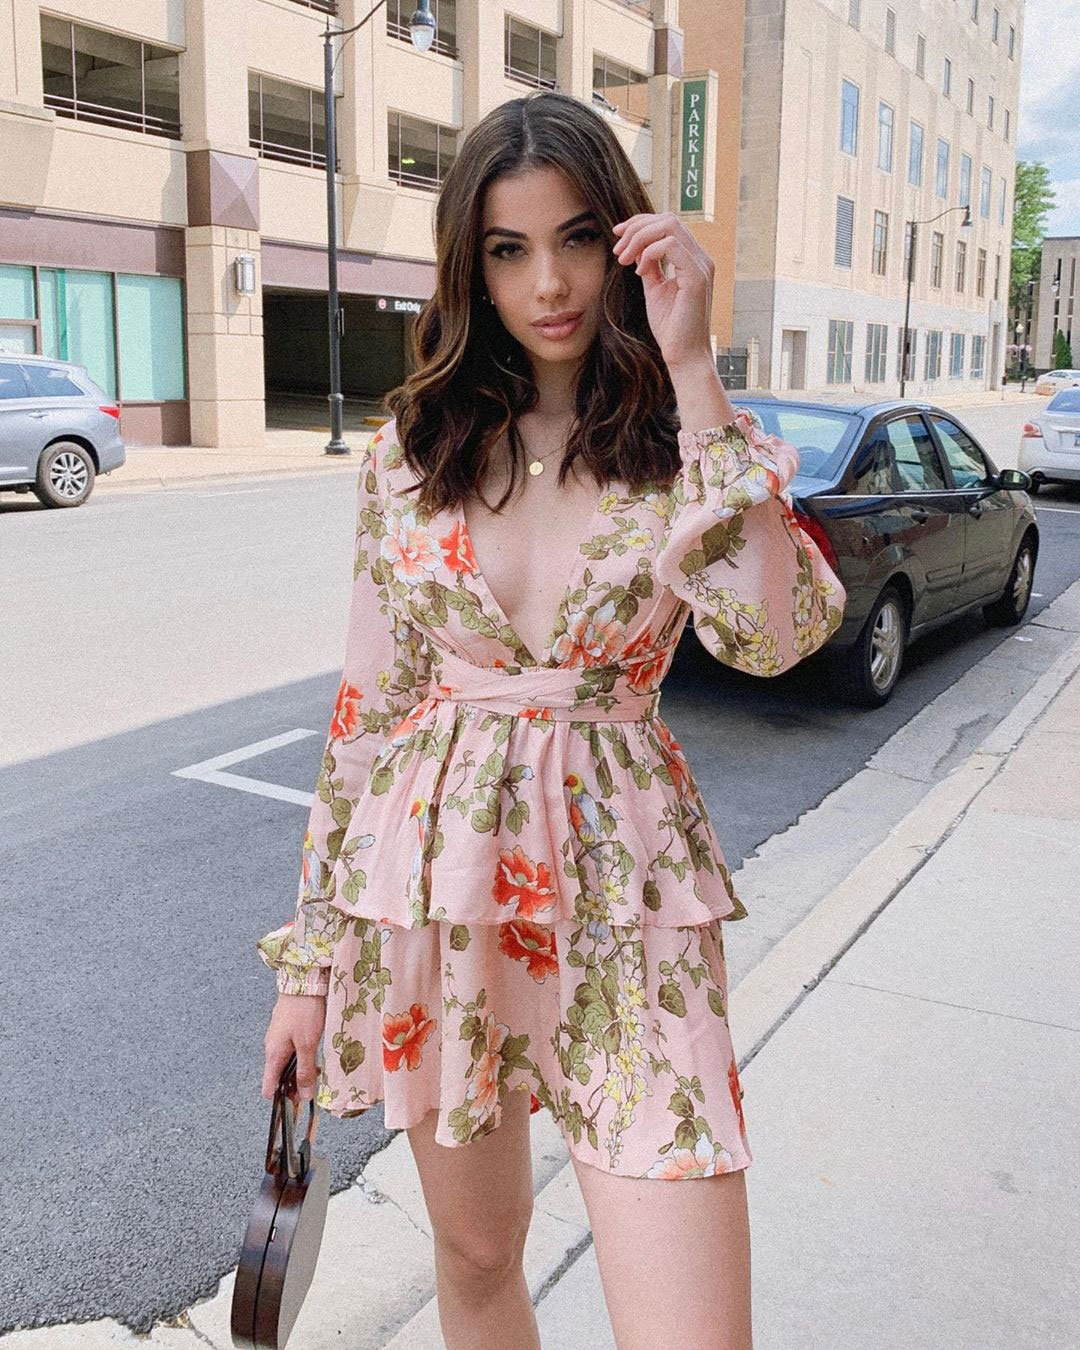 Best Shoes to Wear With a Floral Dress